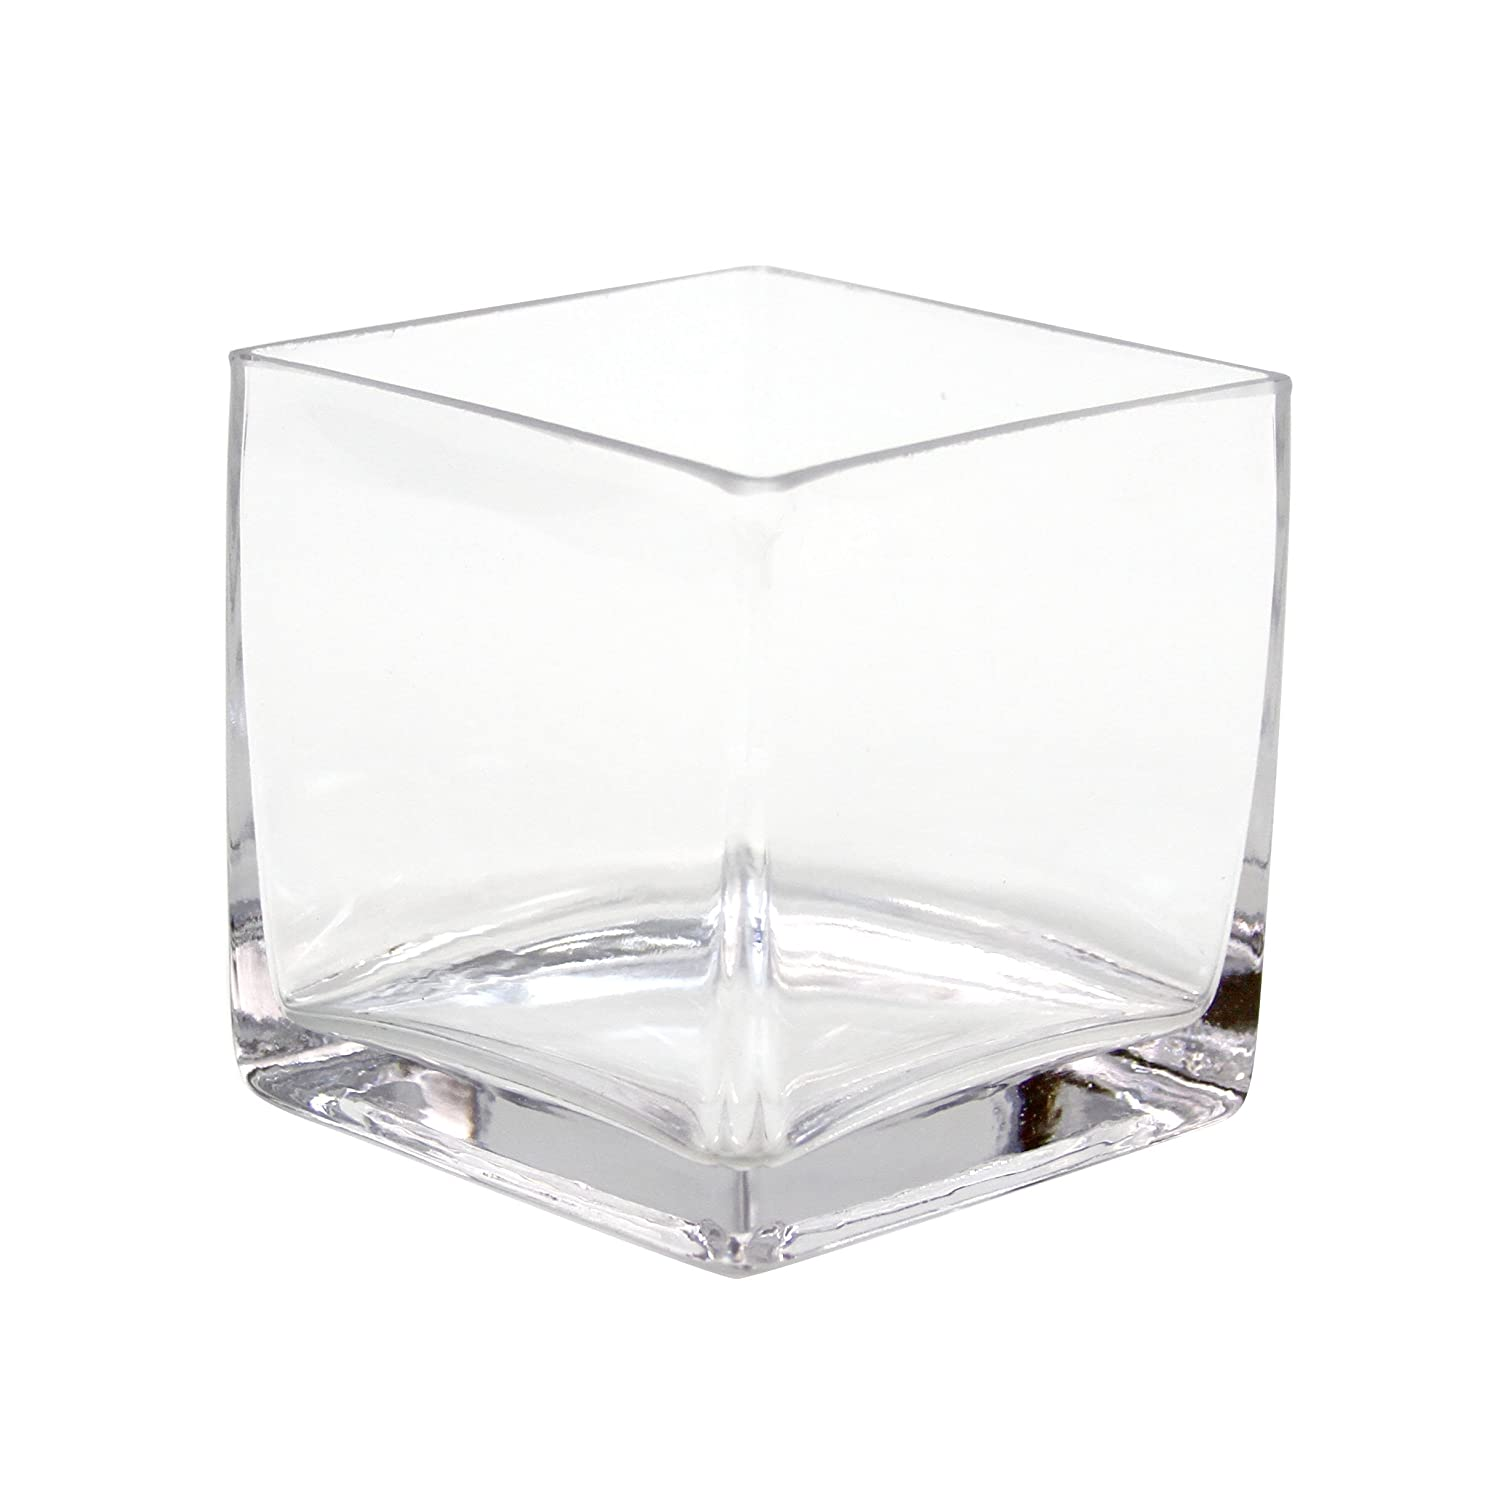 koyal-wholesale-404343-12-pack-cube-square-glass-vases-4-by-4-by-4-inch